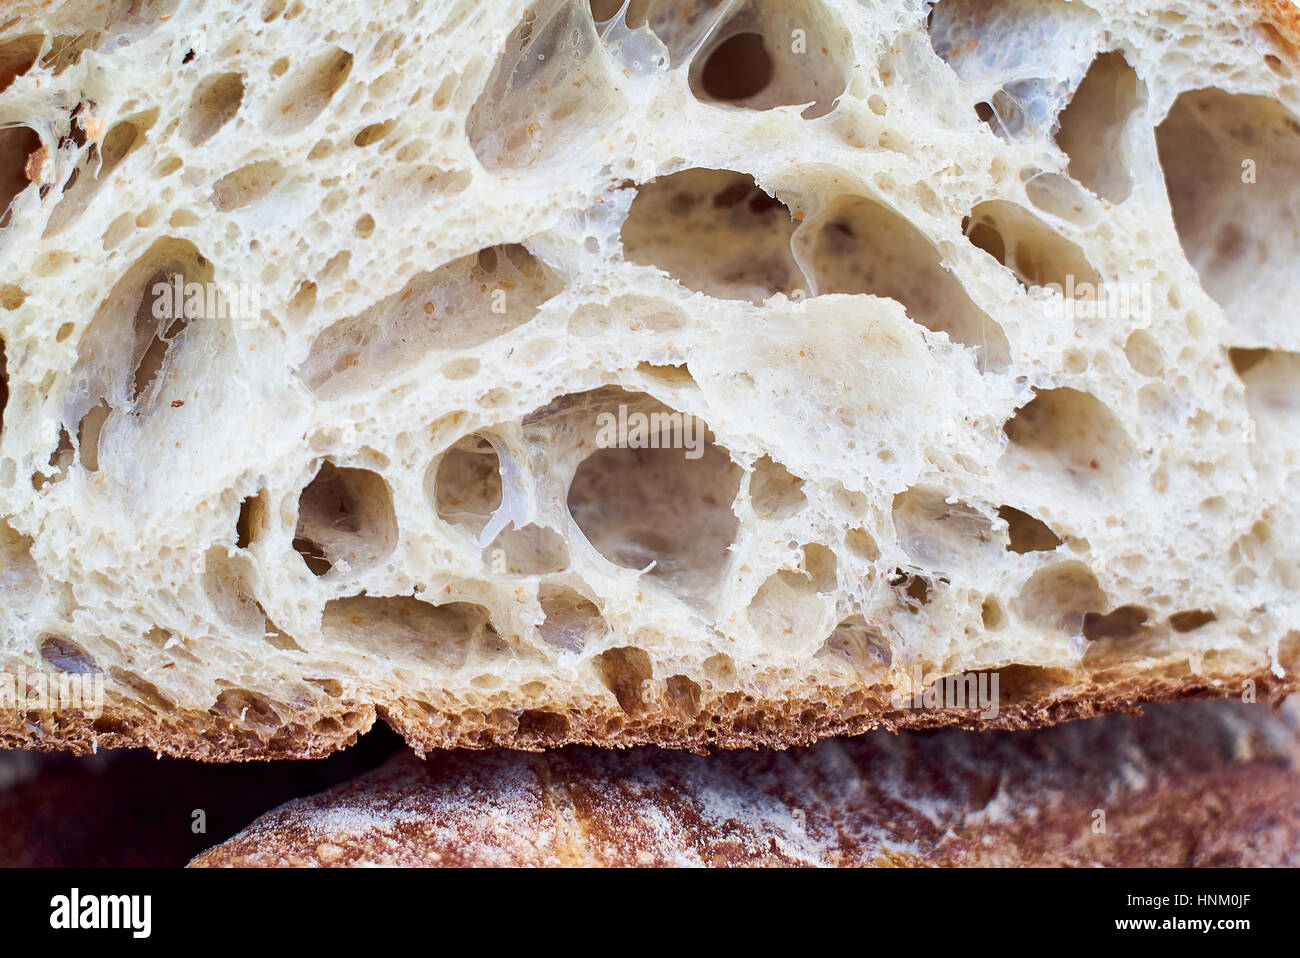 Cut artisan bread loaf in detail - Stock Image